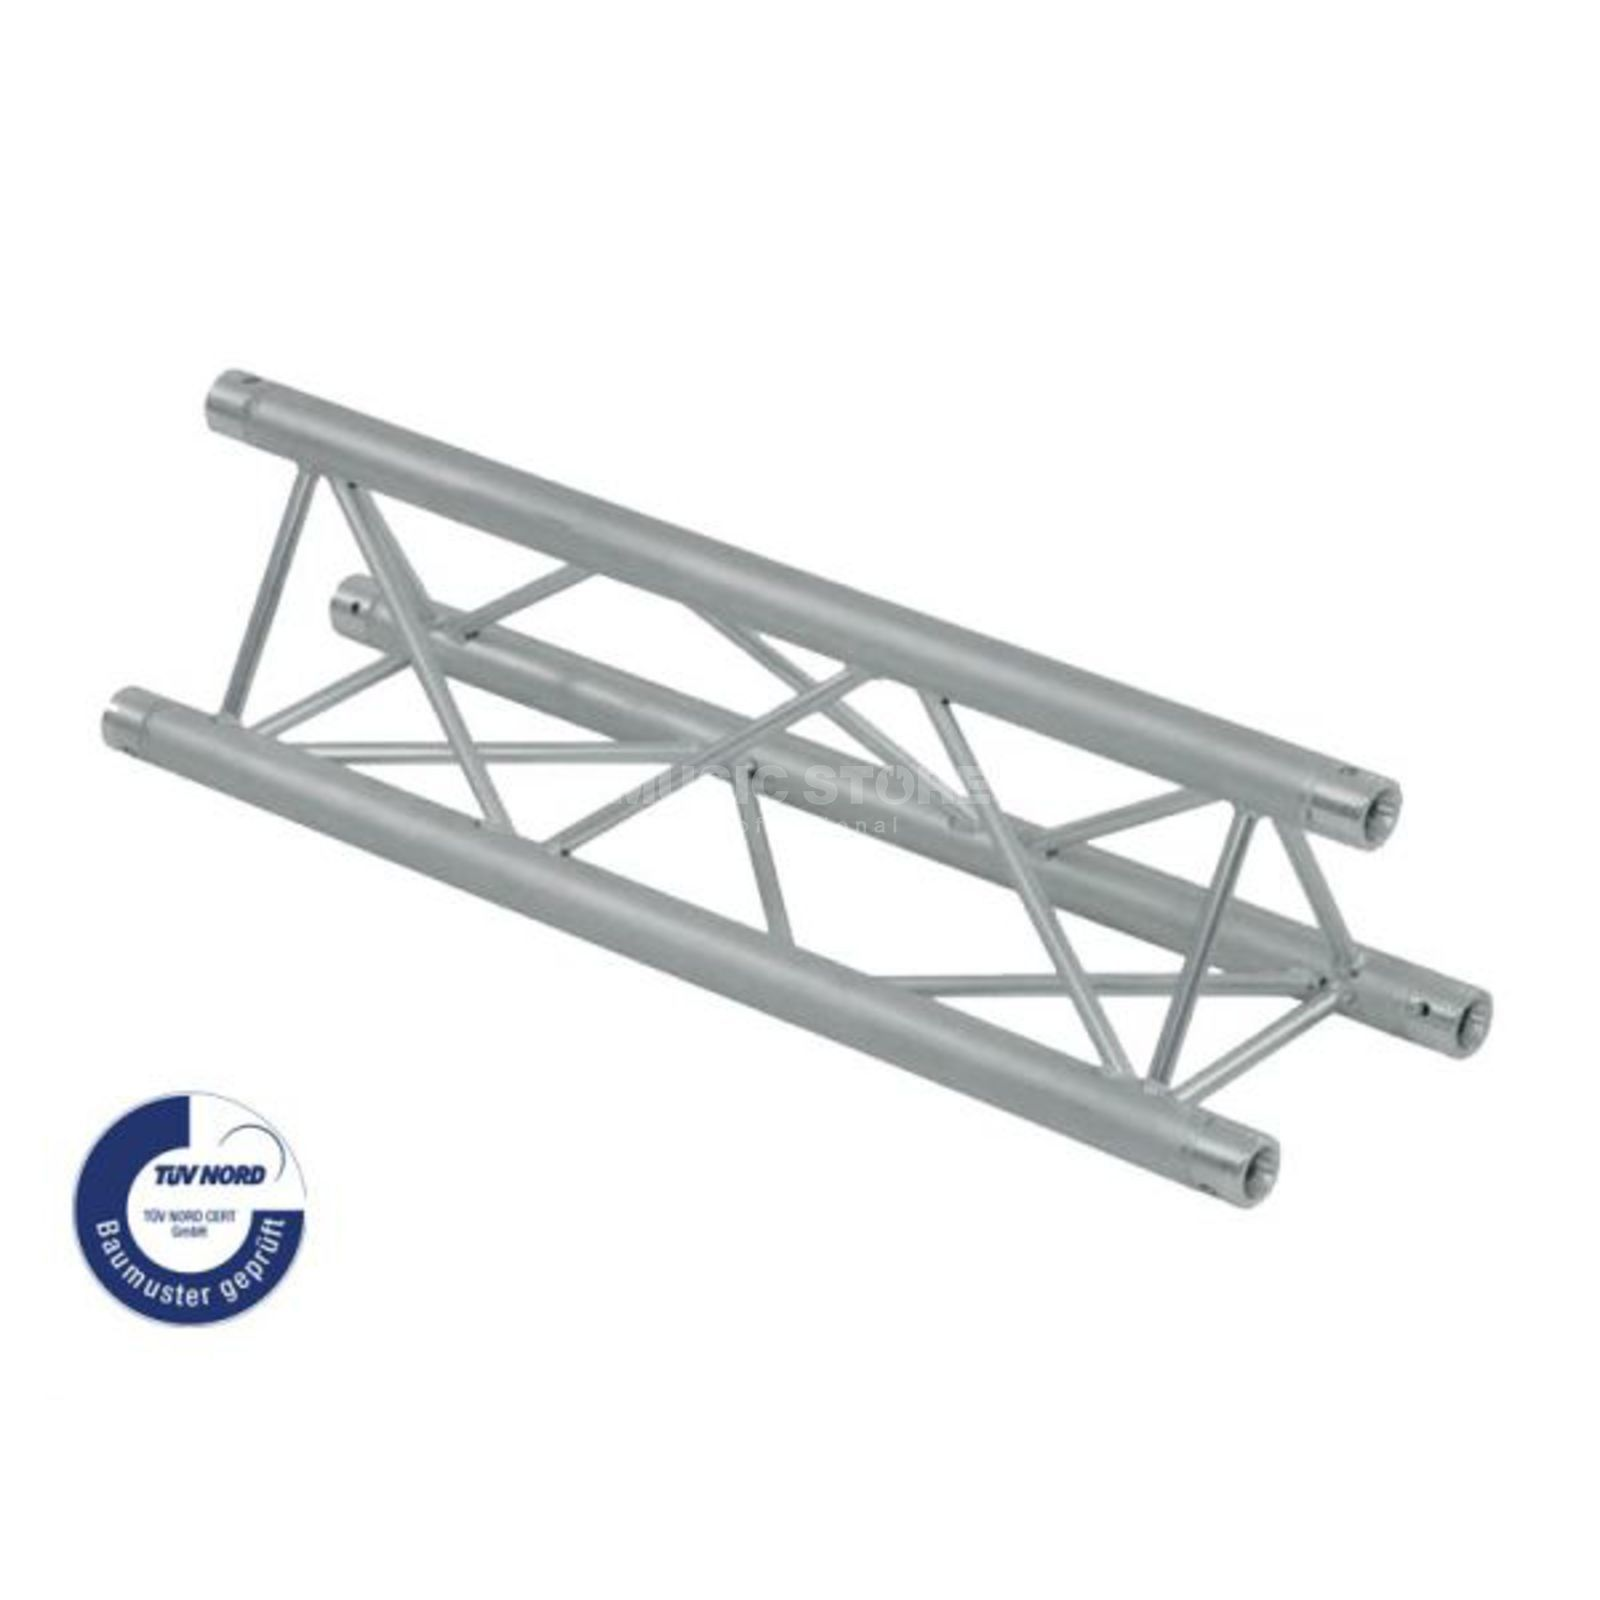 DURATRUSS DT 33-450, 3-Point Truss 4.5 m incl.  Conical Coupler Produktbillede